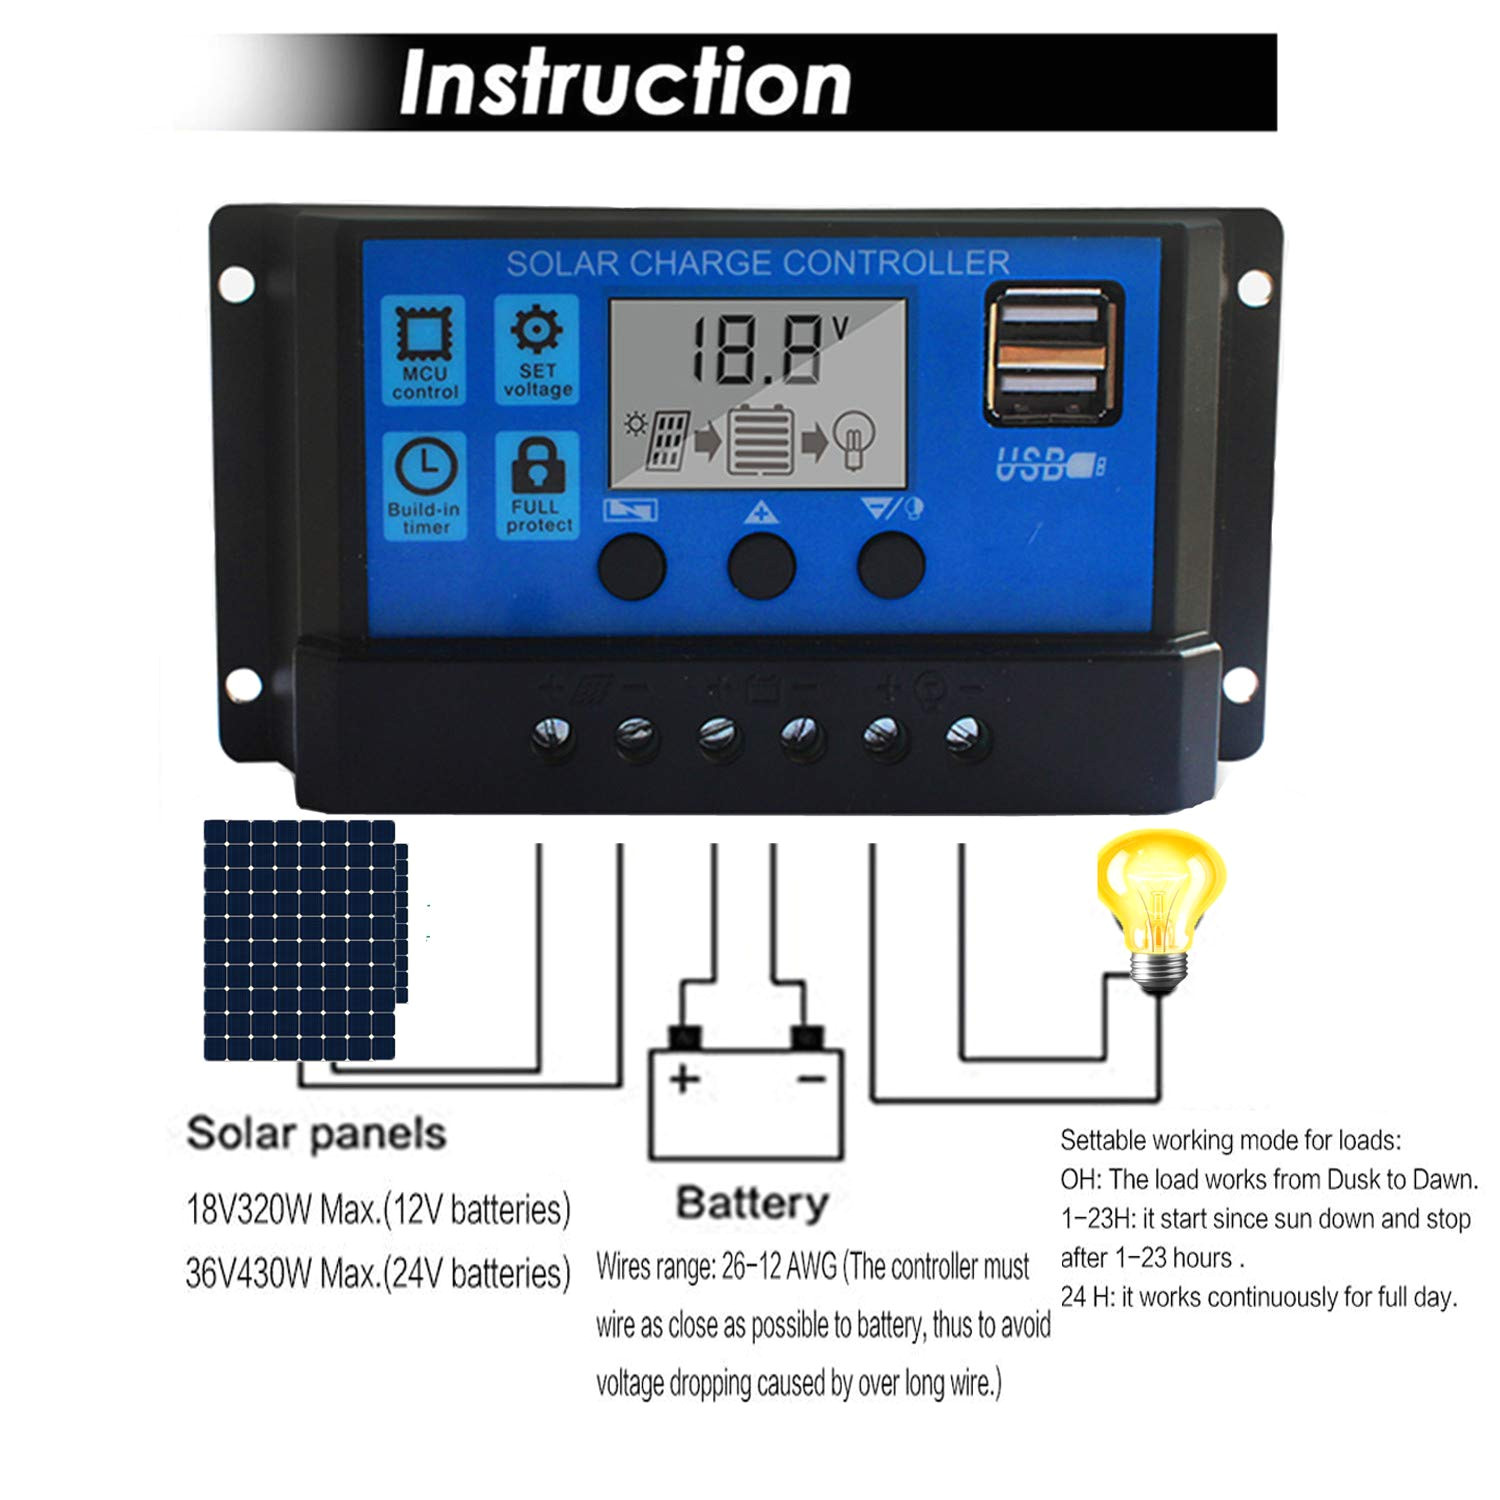 amazon com solar charge controller 20a solar panel battery controller 12v 24v pwm solar controller intelligent regulator adjustable lcd display with dual